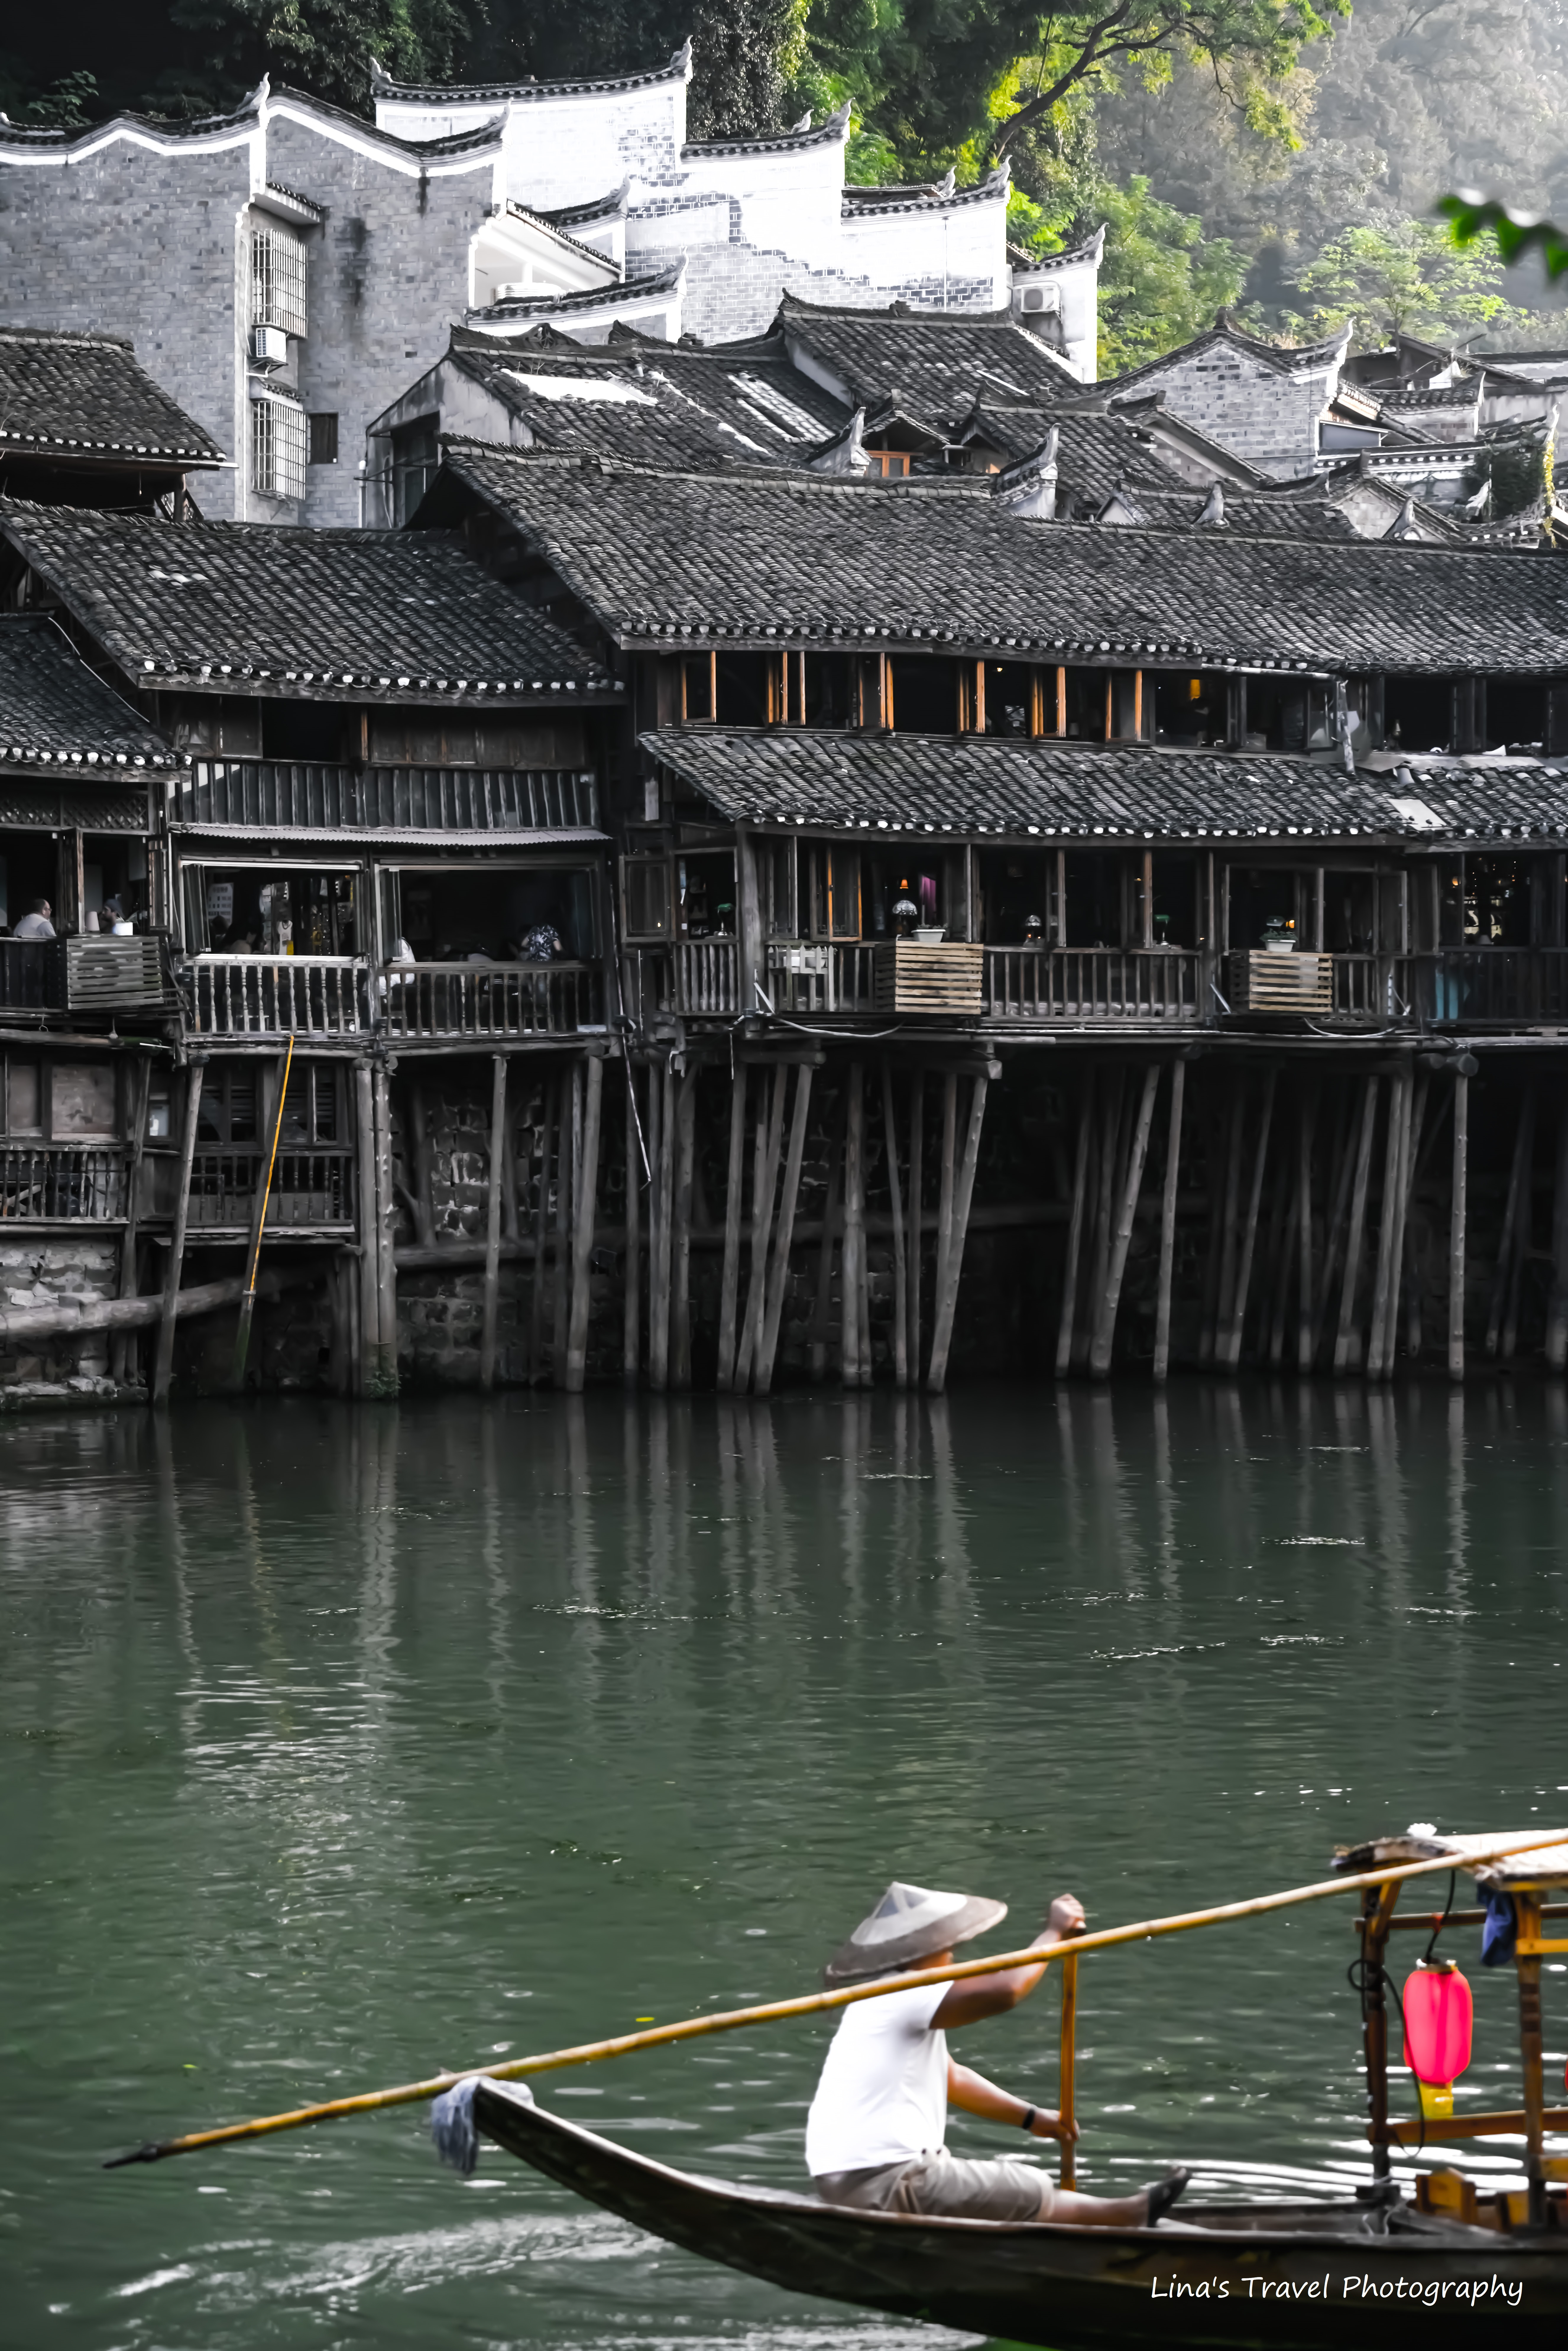 Traditional old stilt houses in Fenghuang Ancient Town, Hunan, China